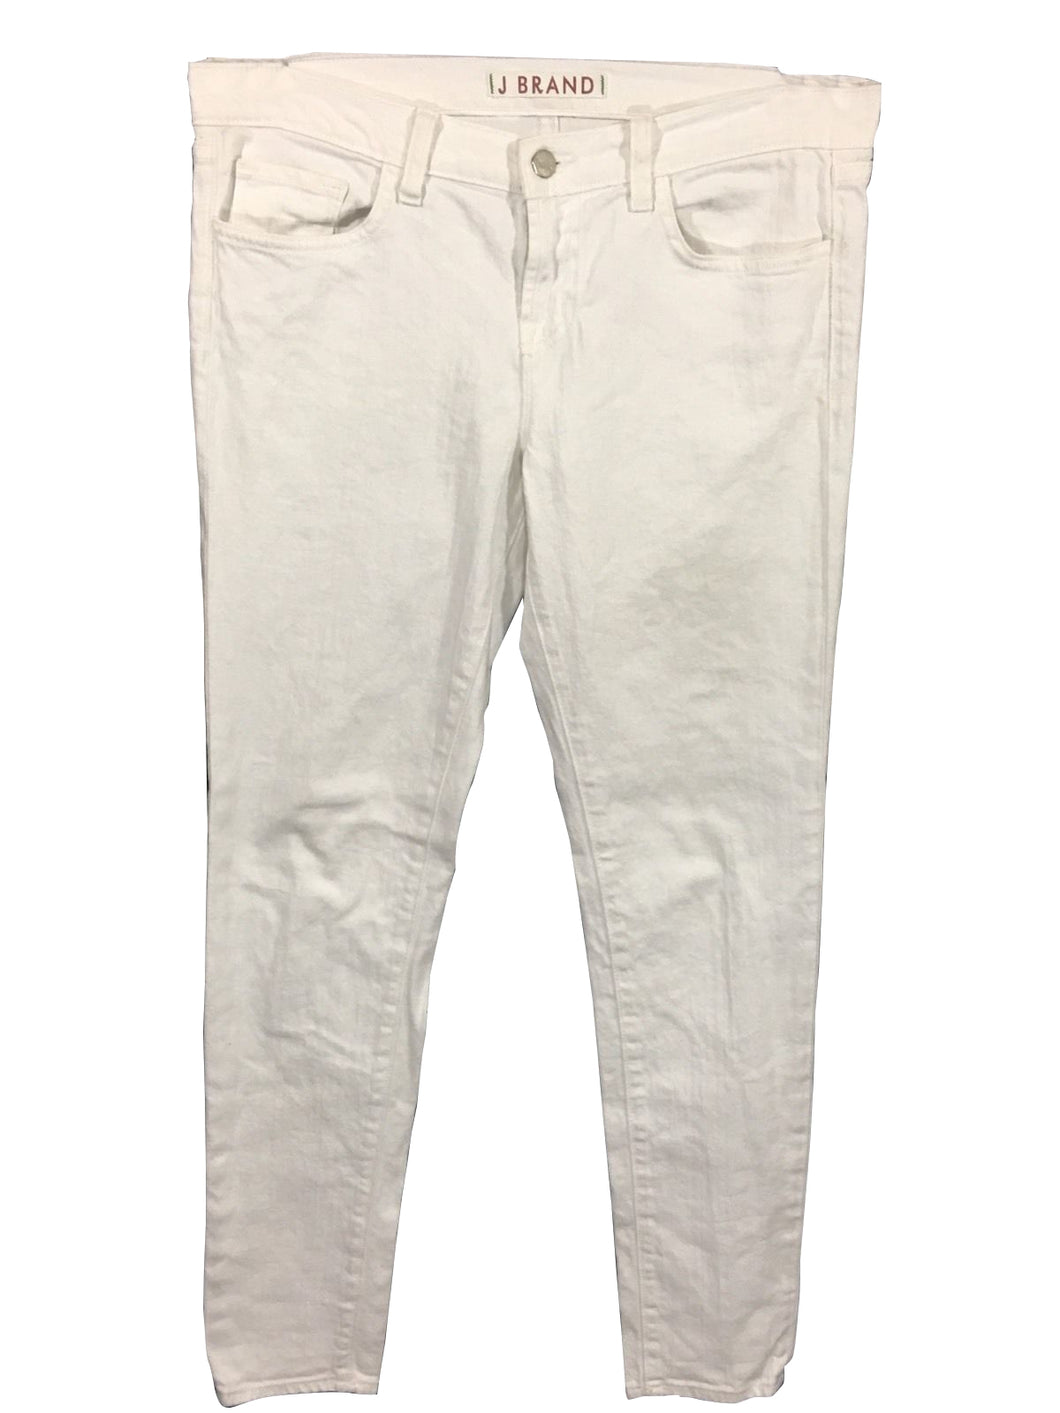 J Brand Skinny Leg Jeans 910 White Stretch 2239 Womens 29 / 6 Actual 32 x 29.5 - FunkyCrap Boutique